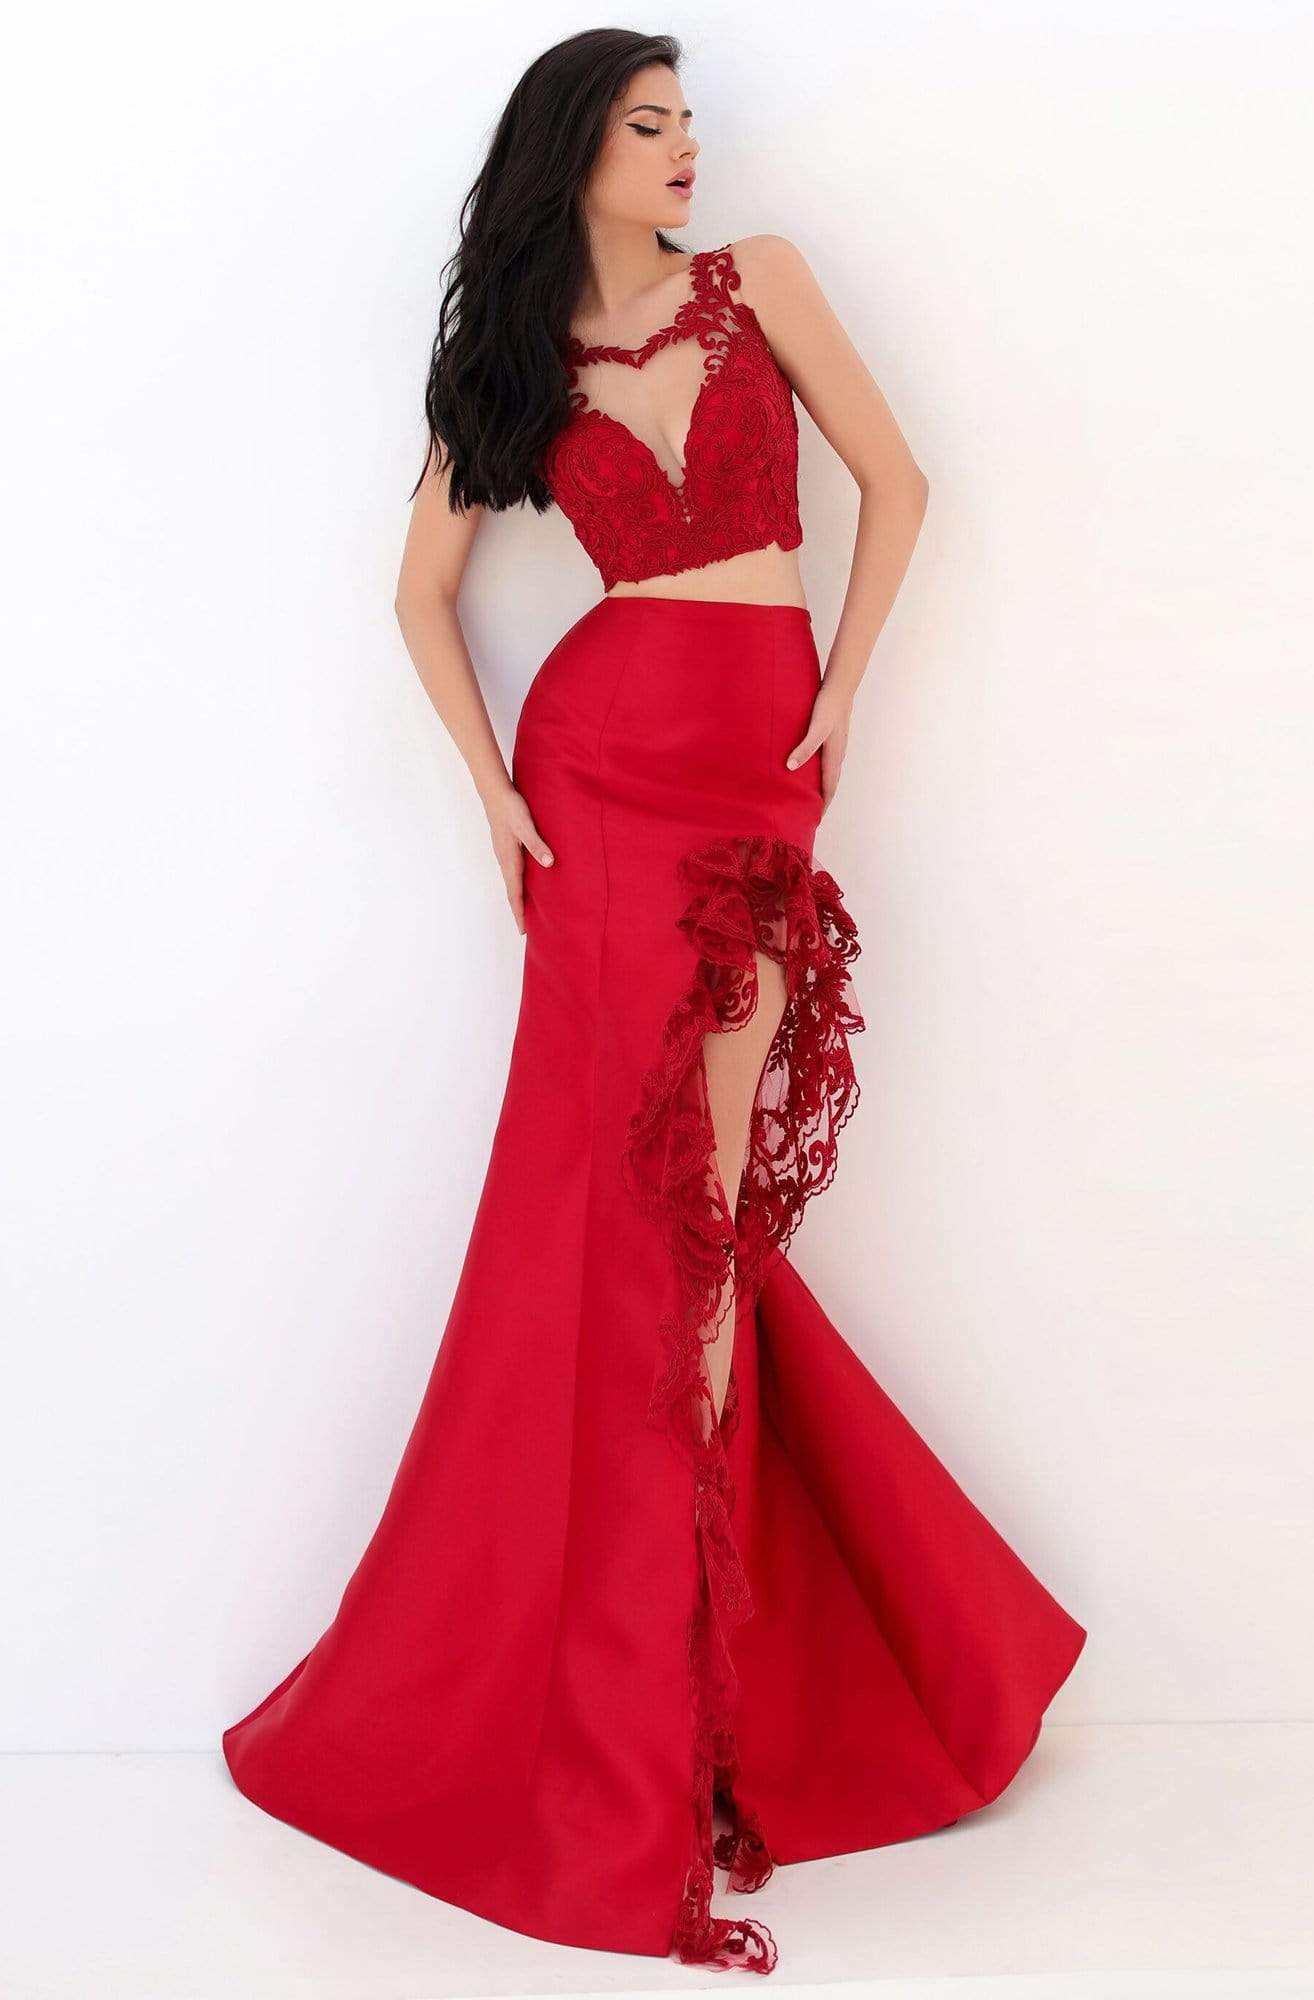 Tarik Ediz - 50696 Two-Piece Ruffle Lace Trimmed High Slit Gown Prom Dresses 0 / Red